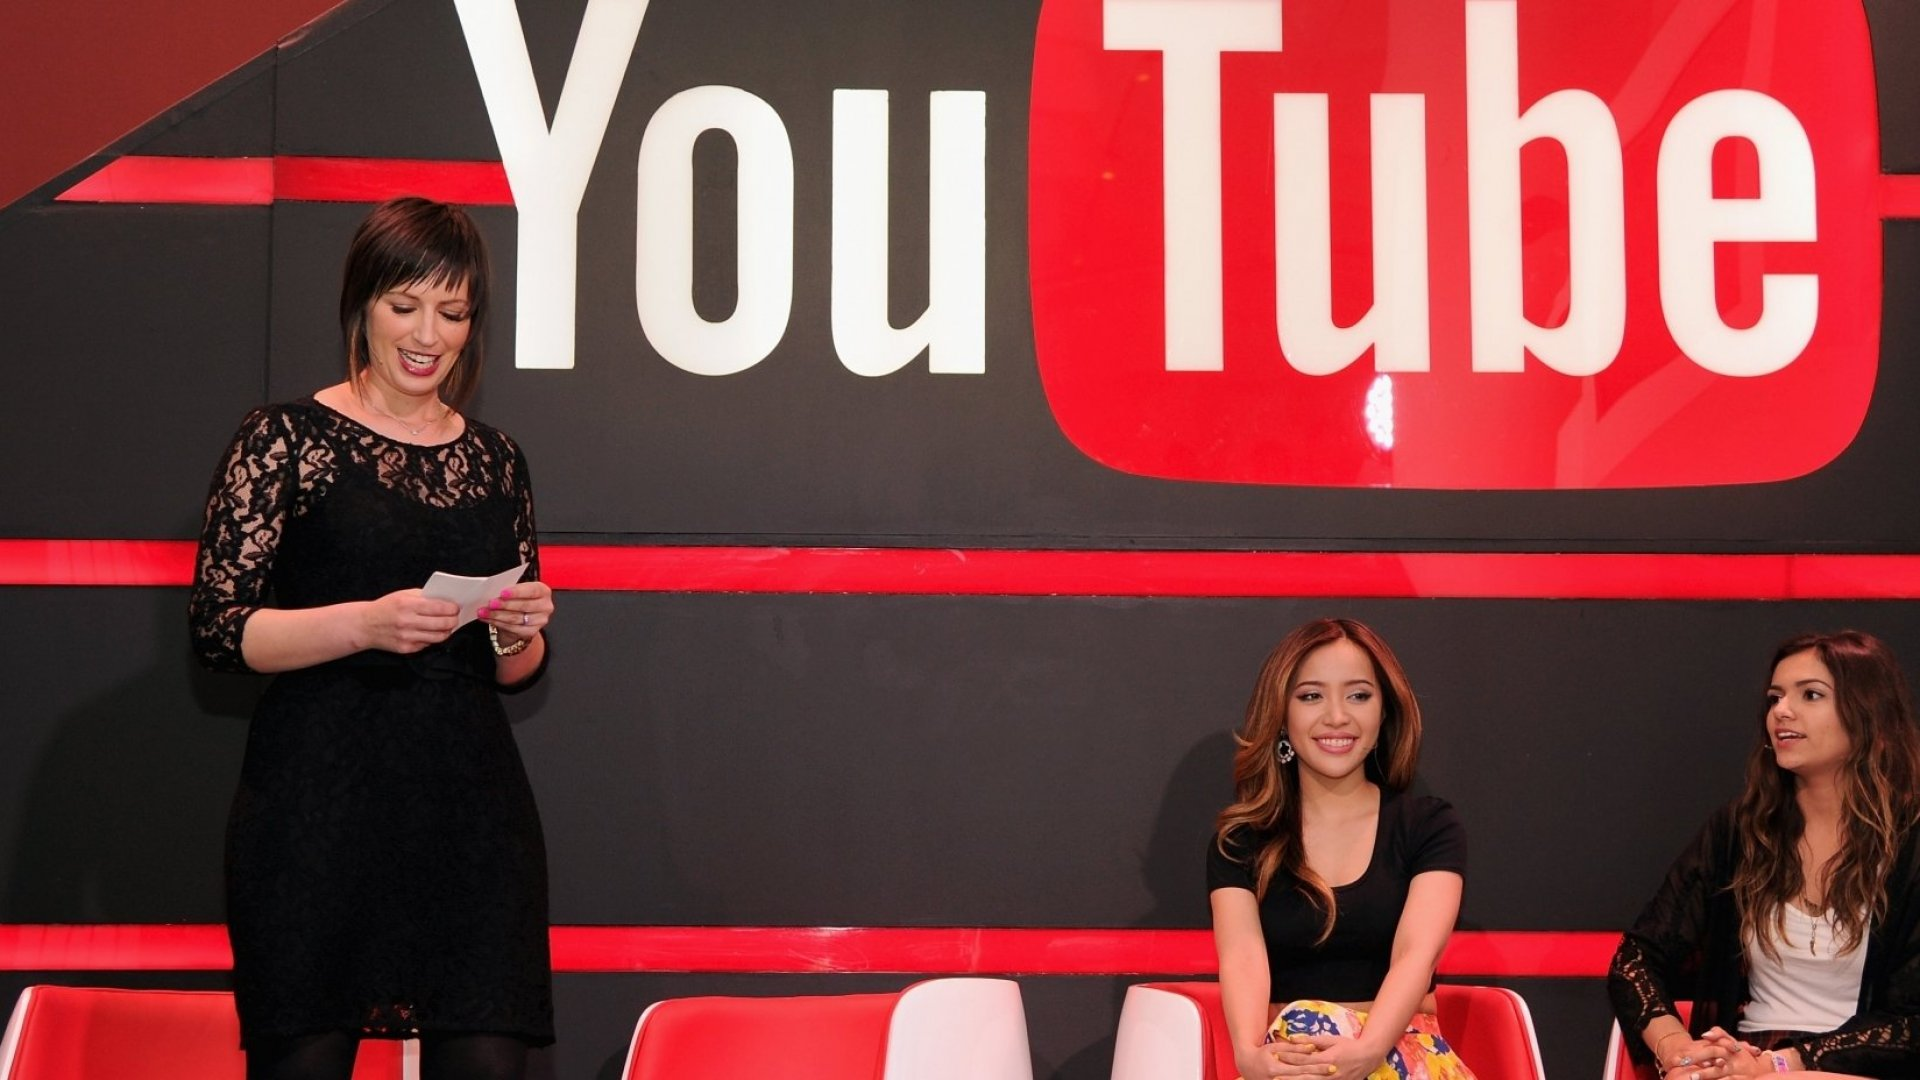 5 Greatest YouTube Ads of 2015